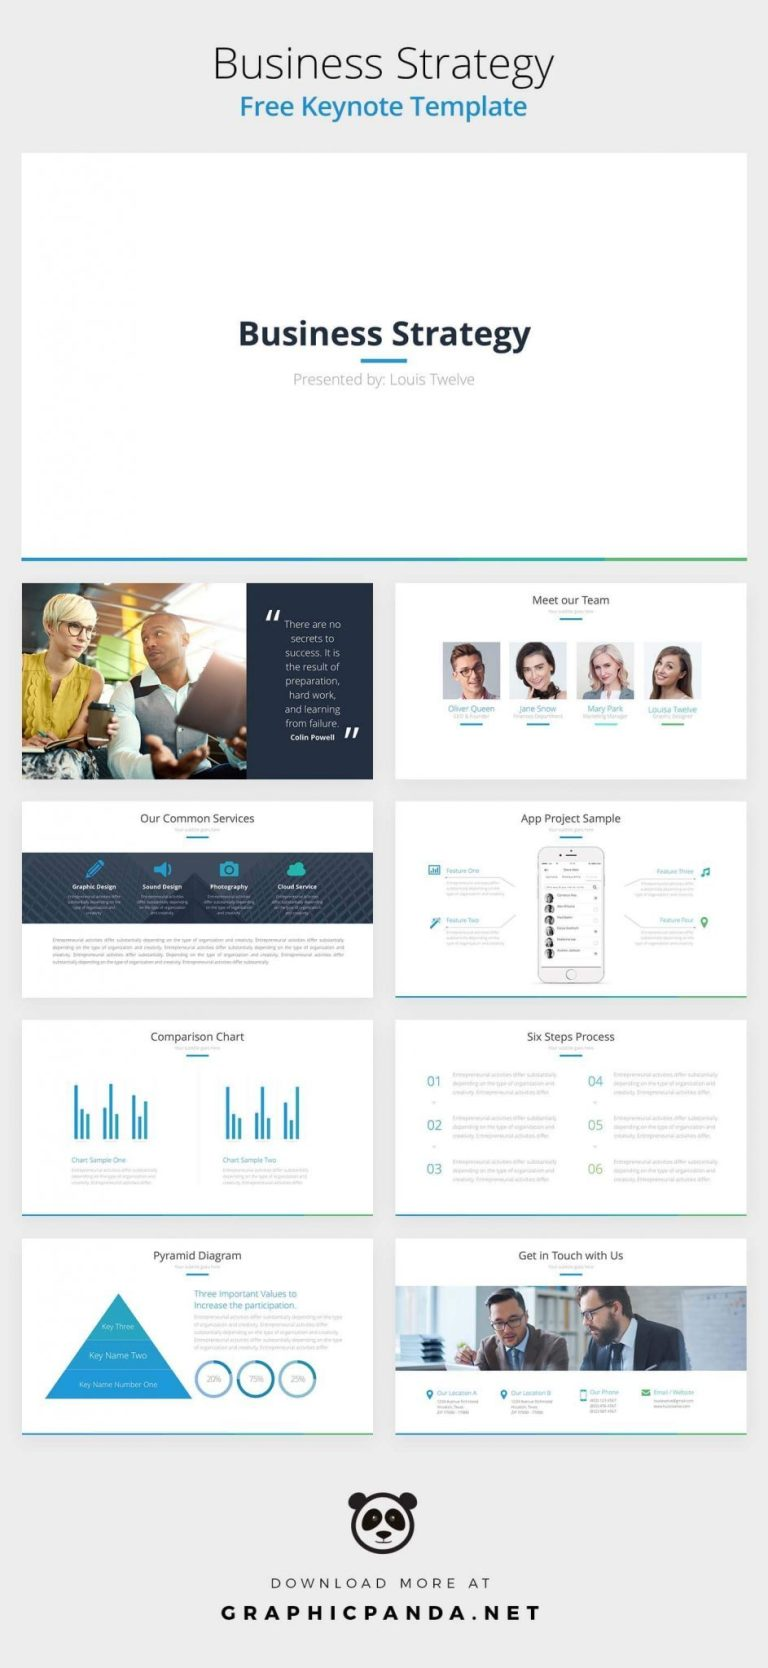 Image Titled: keynote templates free download 18